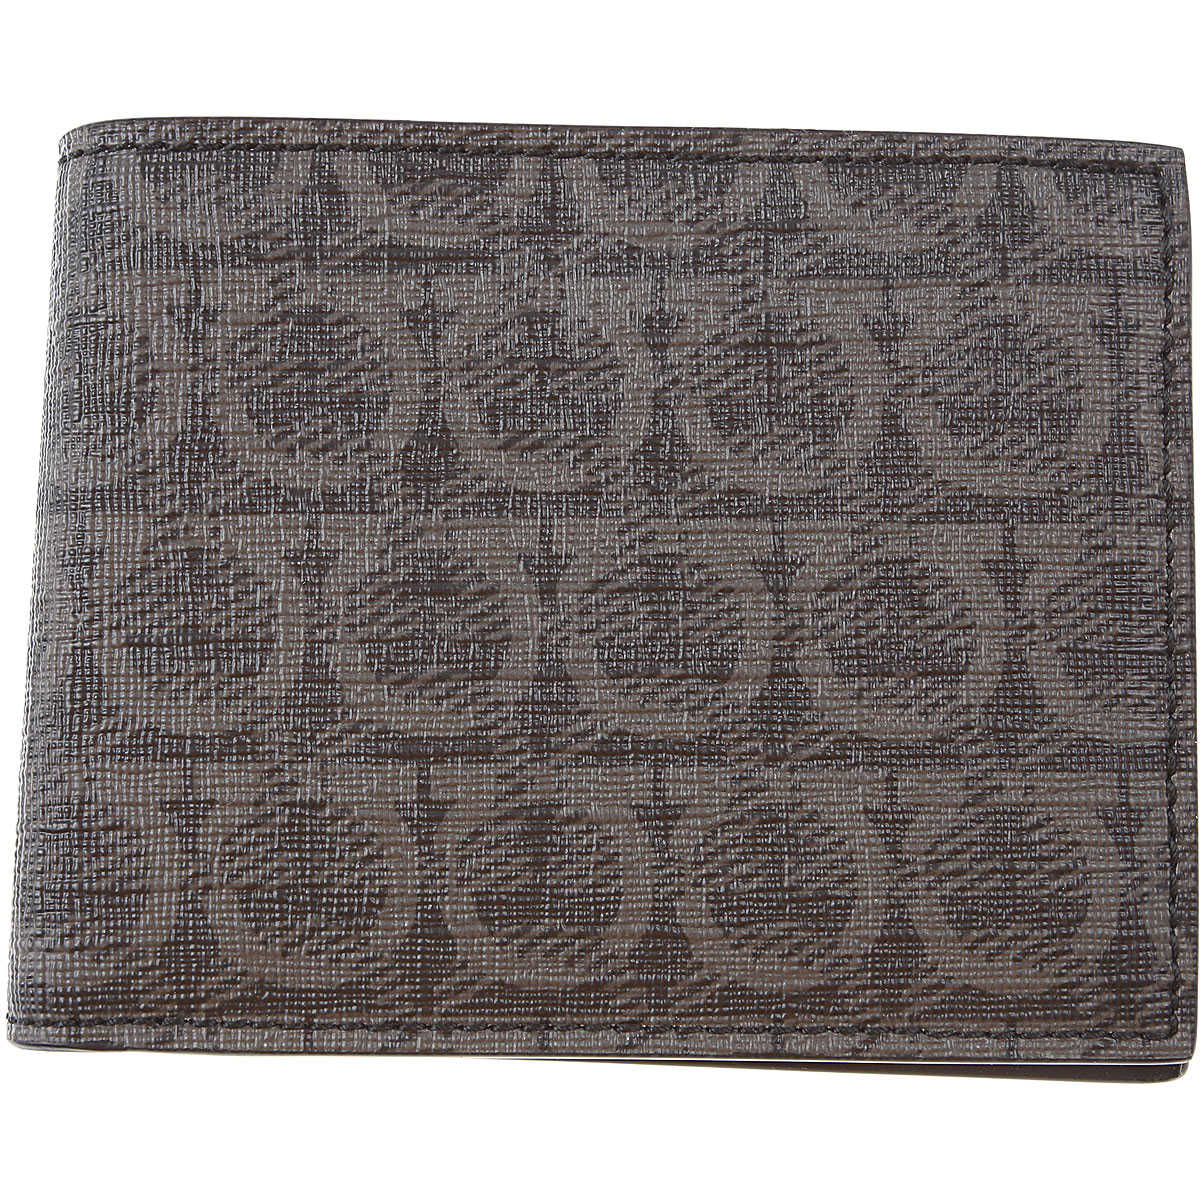 Salvatore Ferragamo Wallet for Men Medium Grey SE - GOOFASH